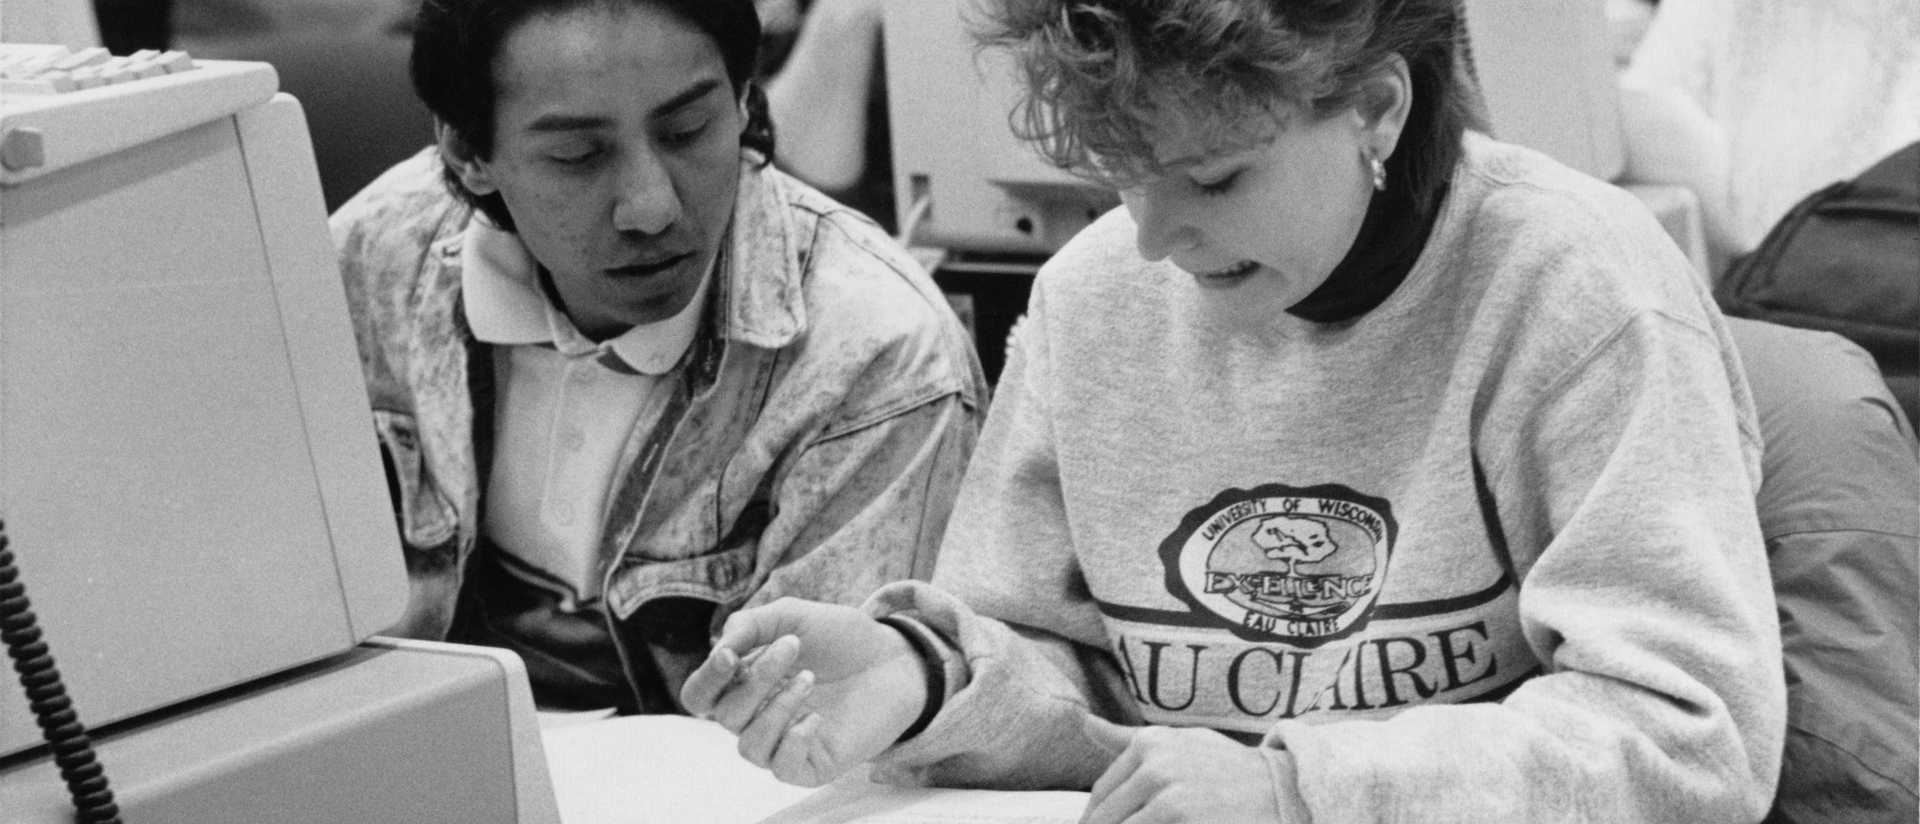 Two students at a PC.